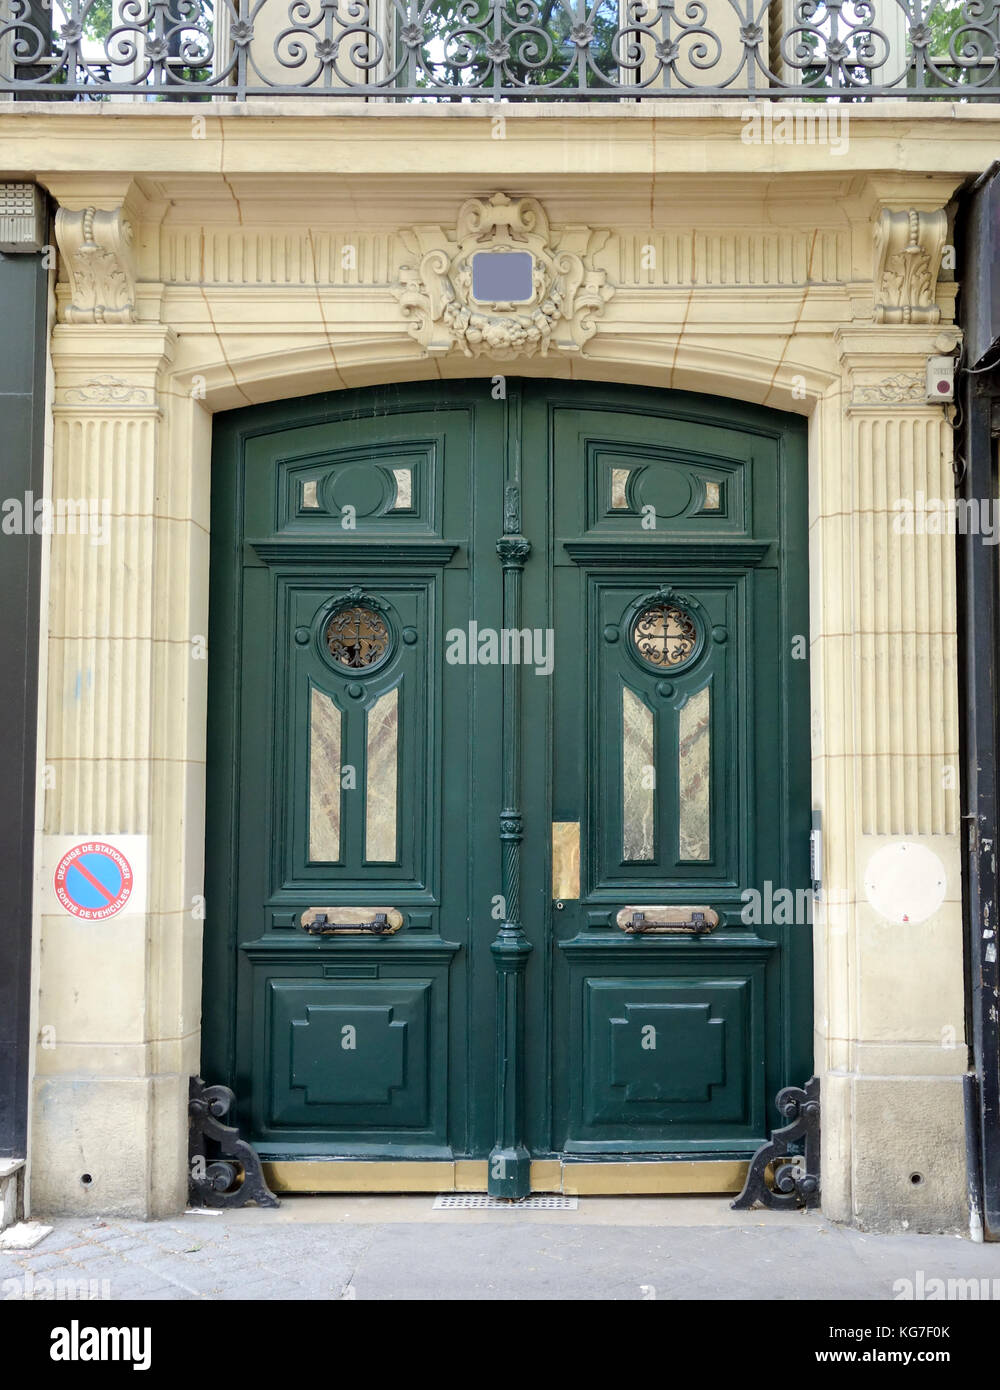 Green double courtyard doors in Paris 2017 & Green double courtyard doors in Paris 2017 Stock Photo Royalty ...